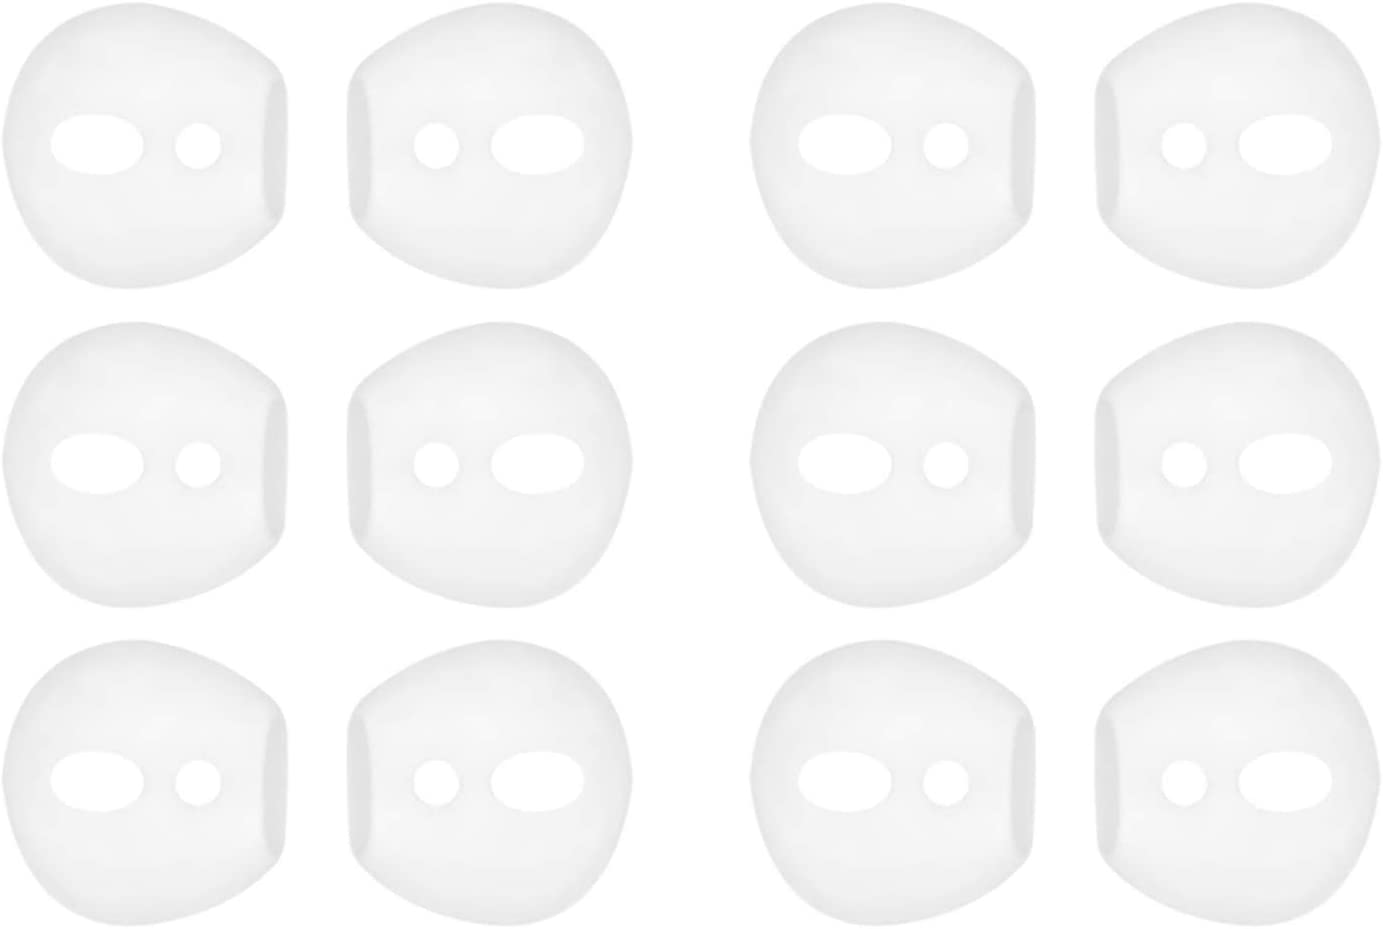 IiEXCEL Fit in Case Earbuds for AirPods, 6 Pairs Replacement Super Thin Slim Silicone Eartips Ear Tips Buds Covers Skin Accessories for Apple AirPods 1 AirPods 2 (Fit in Charging Case) 6 White